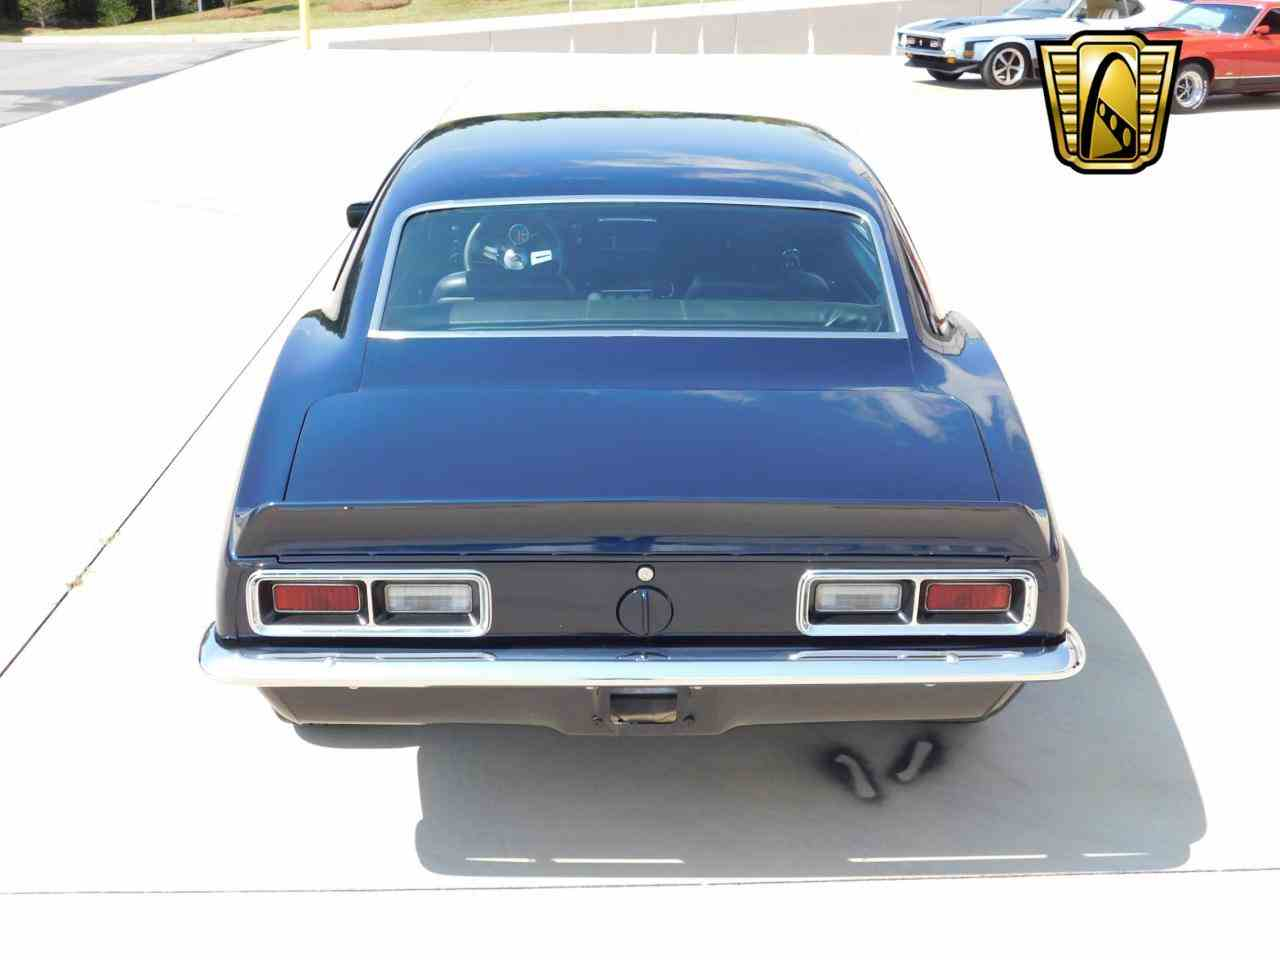 Large Picture of '68 Chevrolet Camaro located in Alpharetta Georgia - $33,995.00 Offered by Gateway Classic Cars - Atlanta - LRVS